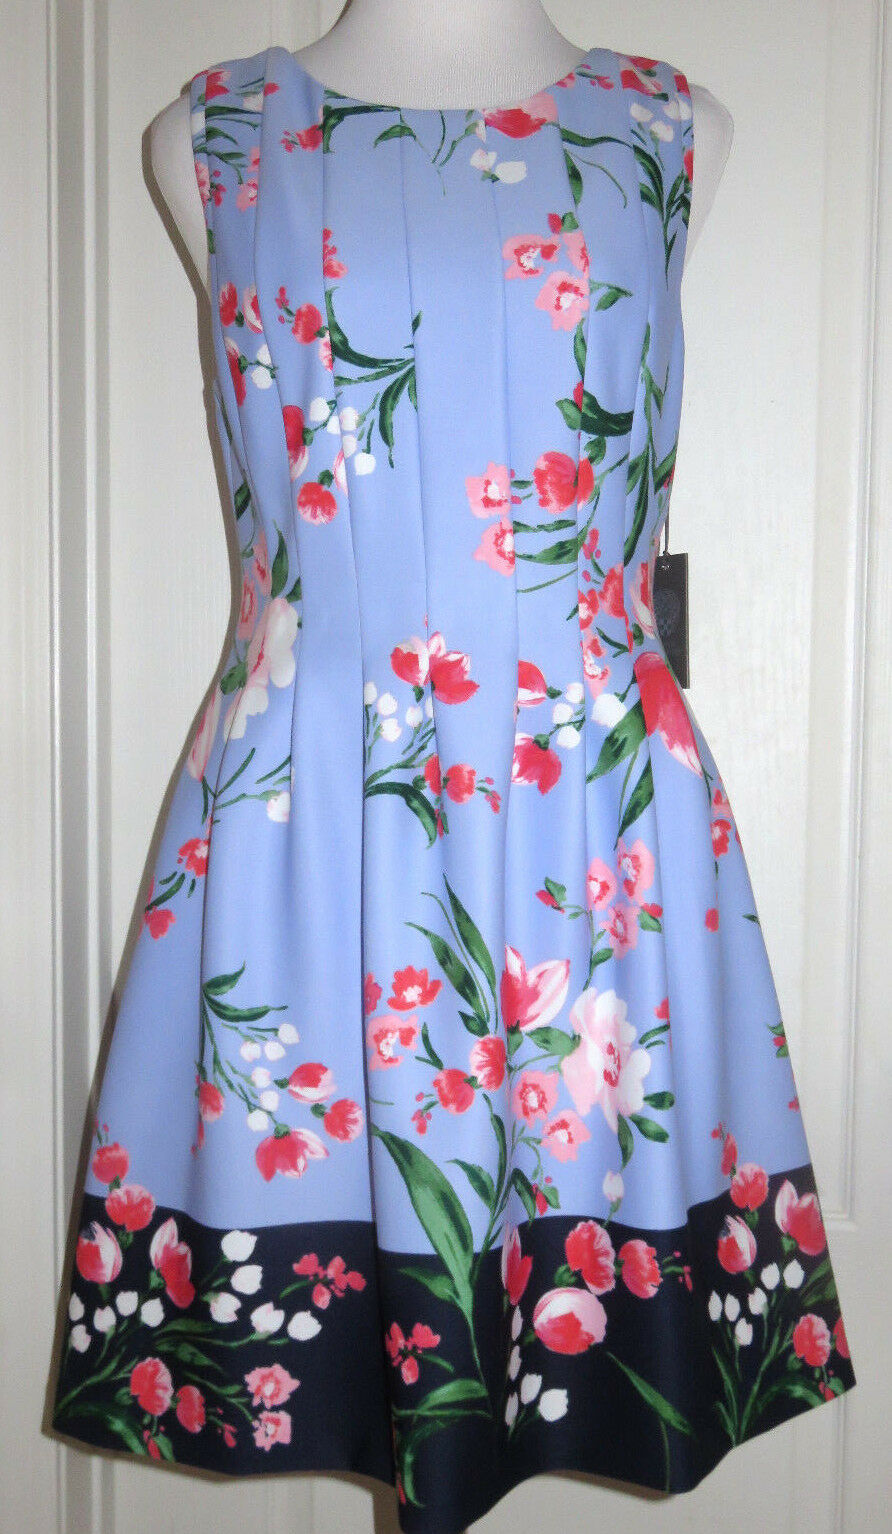 VInce Camuto Women's bluee Floral Spring Pleat Fit and Flare Dress 10 14 NEW  148